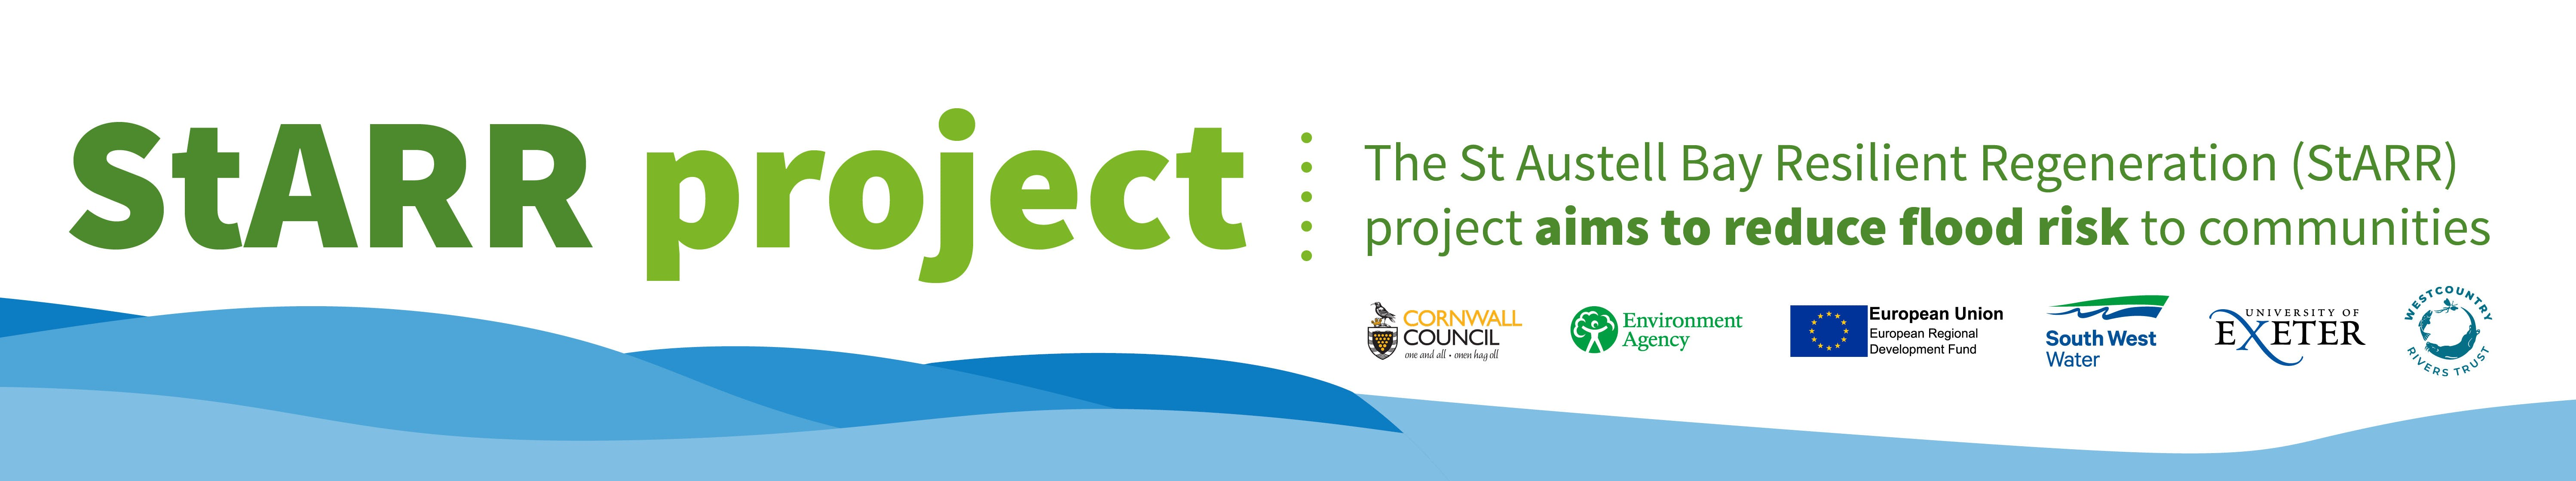 St Austell Bay Resilient Regeneration (StARR) project aims to reduce flood risk to communities